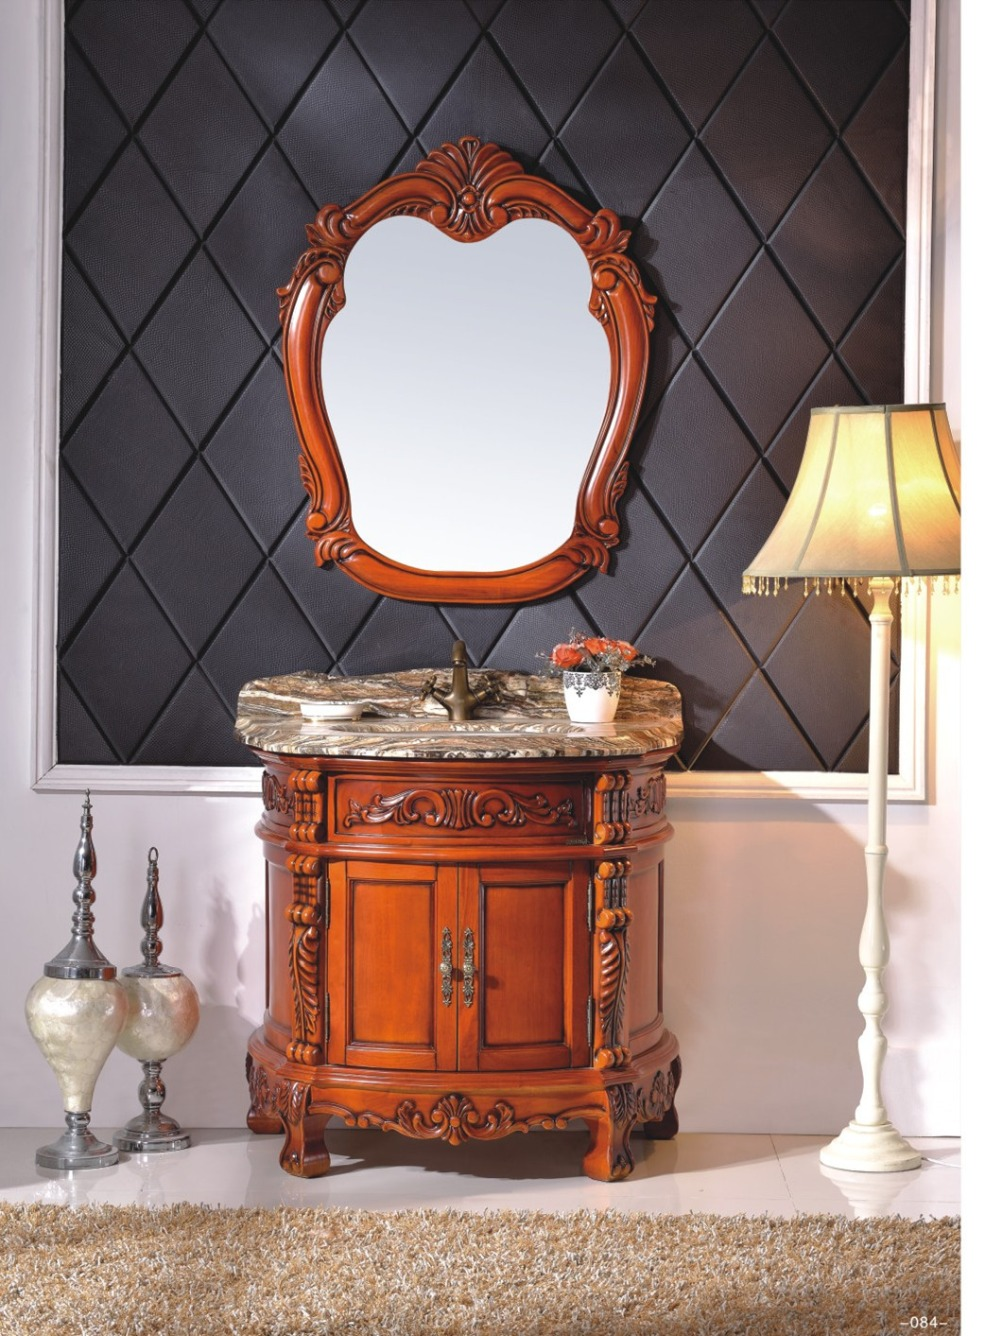 Cherry wood bathroom vanity - Red Cherry Color Bathroom Cabinet With Natural Marble Top 0281 B8062